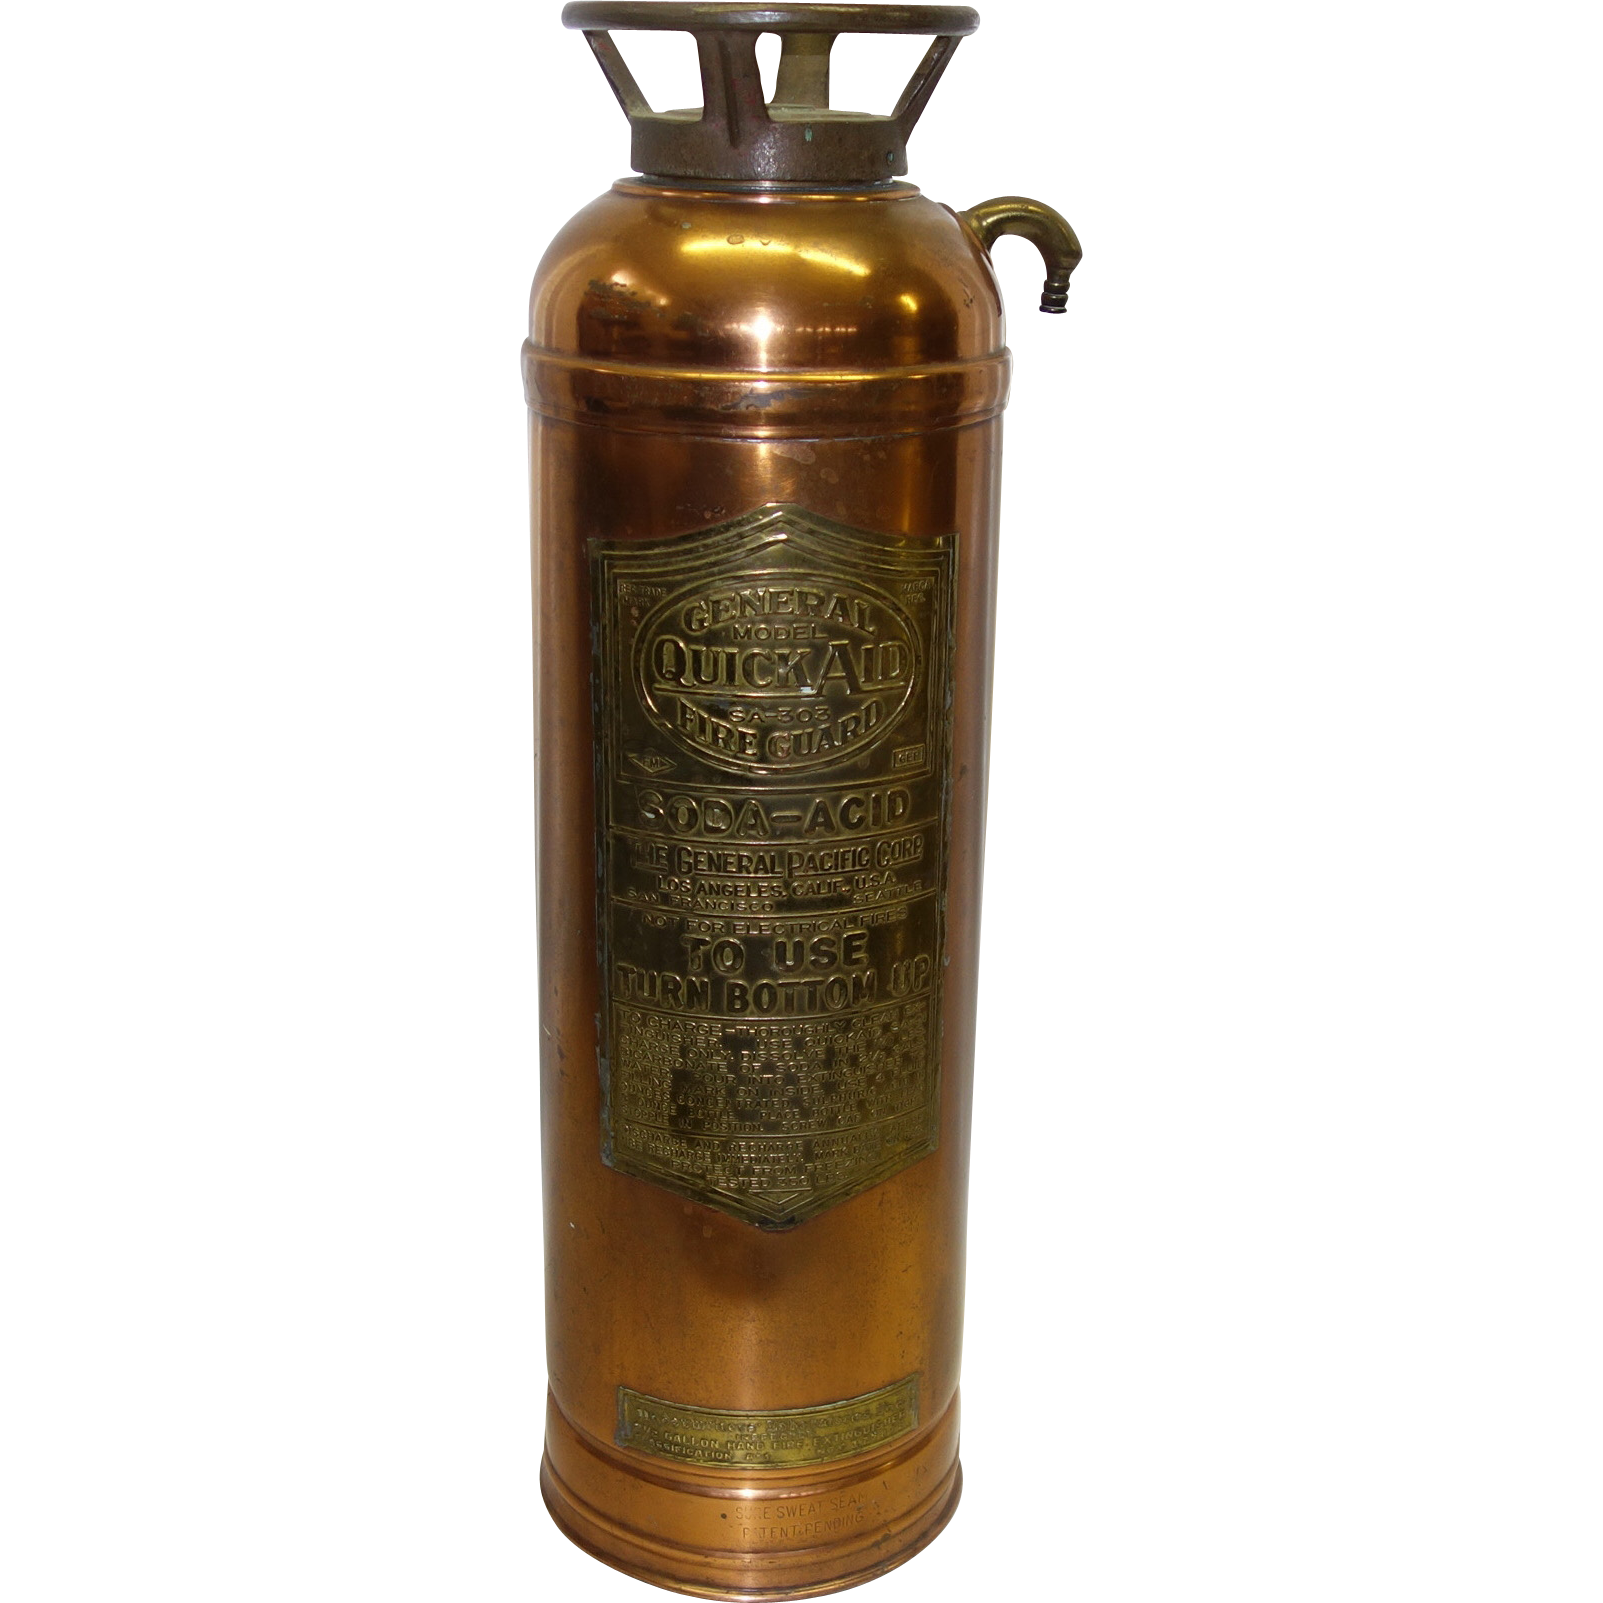 Vintage Copper and Brass General Quick Aid Fire Guard Fire Extinguisher Model SA-305